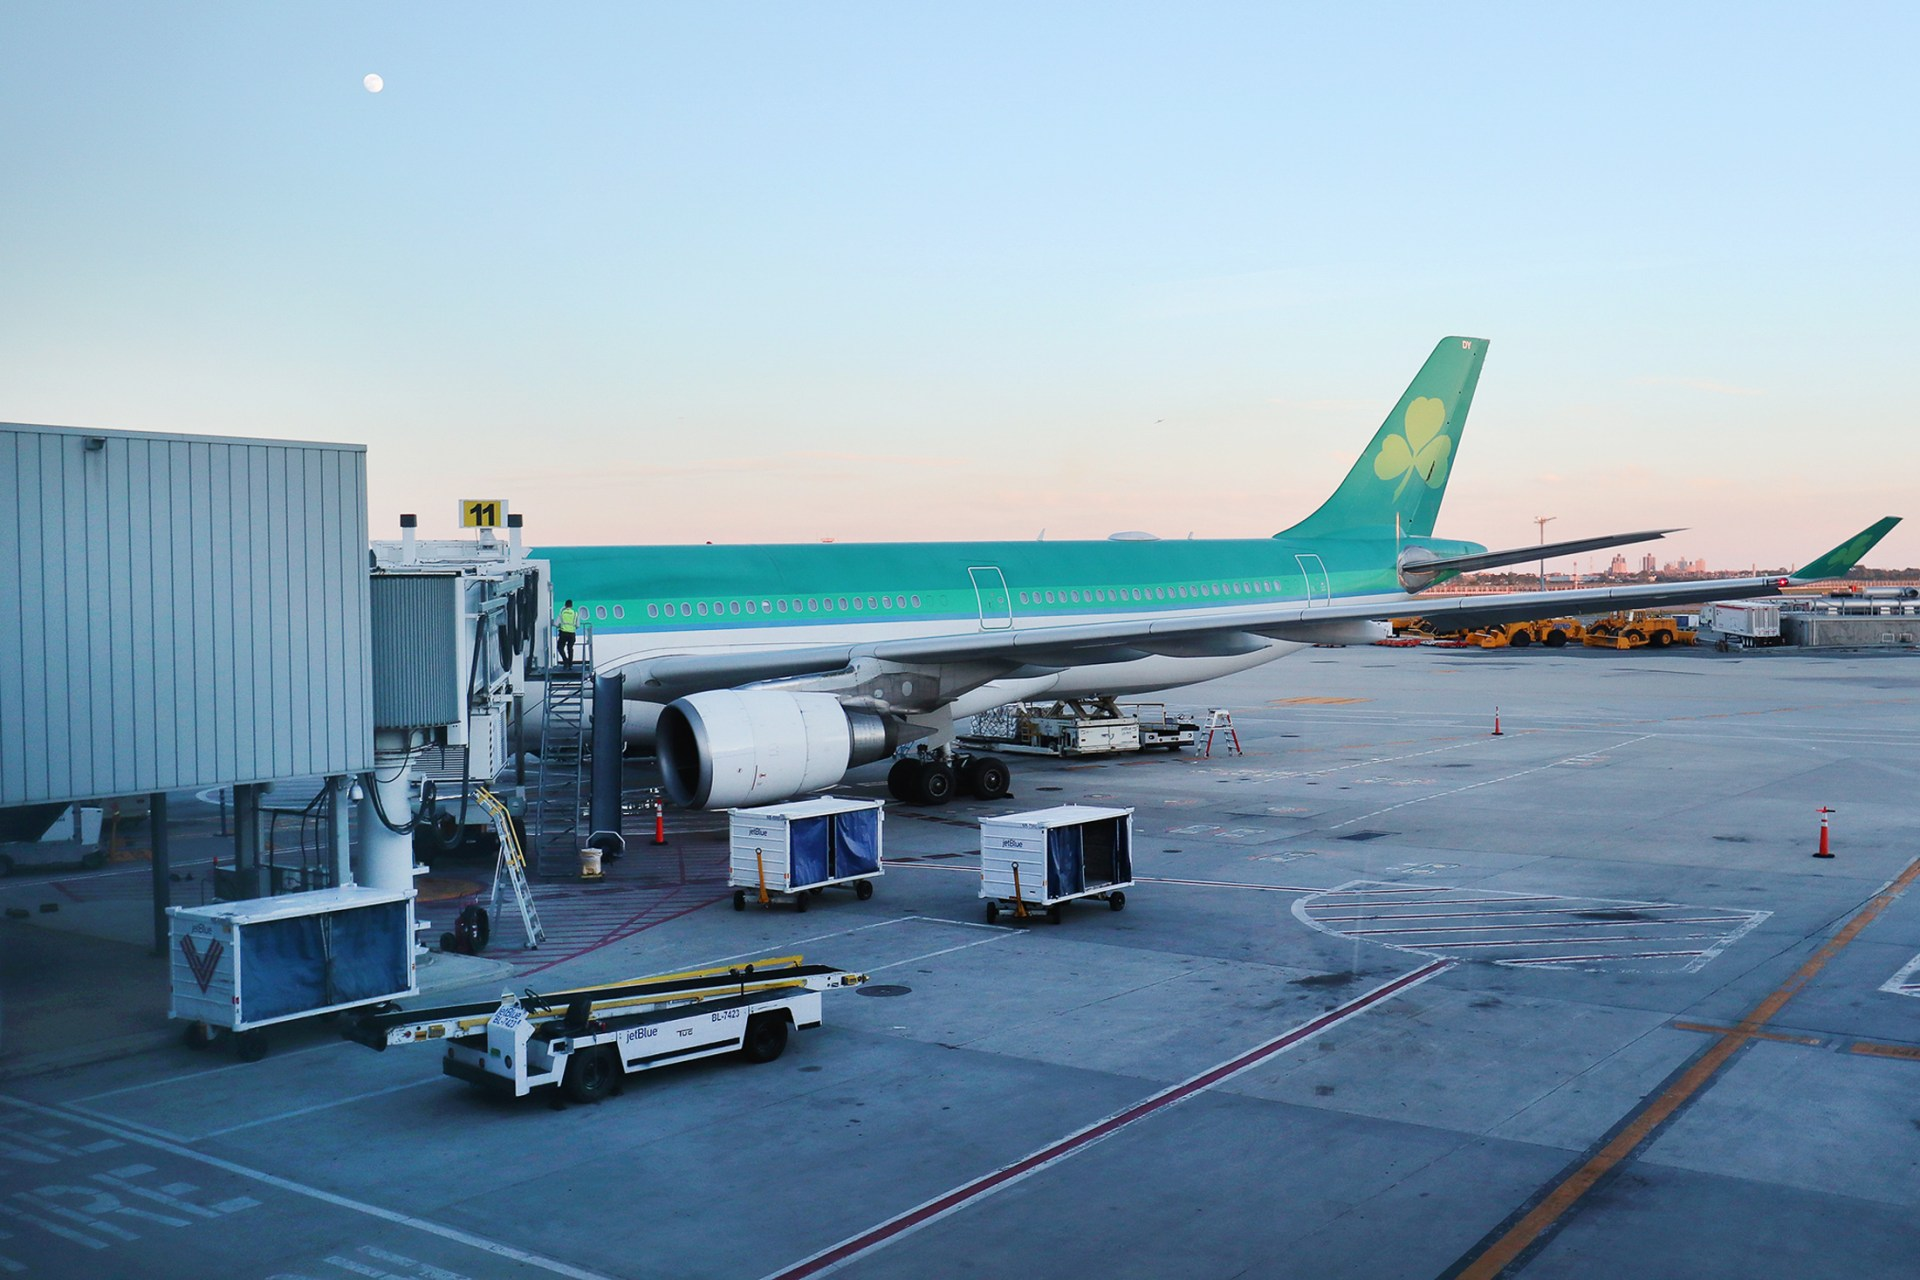 The crazy story of my last minute trip to Ireland